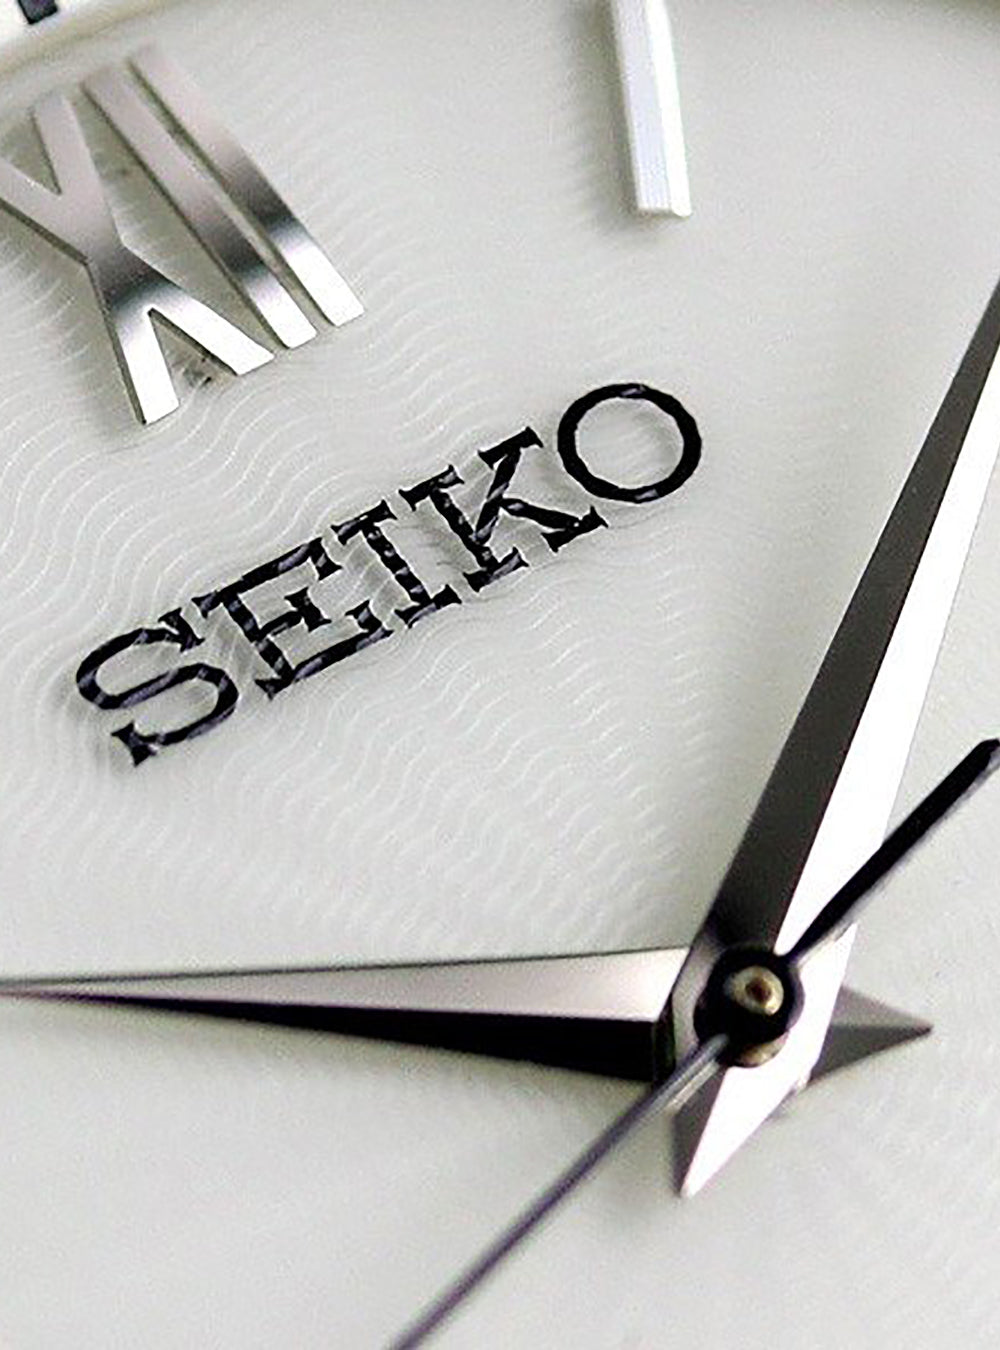 SEIKO BRIGHTZ SAGZ095 MADE IN JAPAN JDM